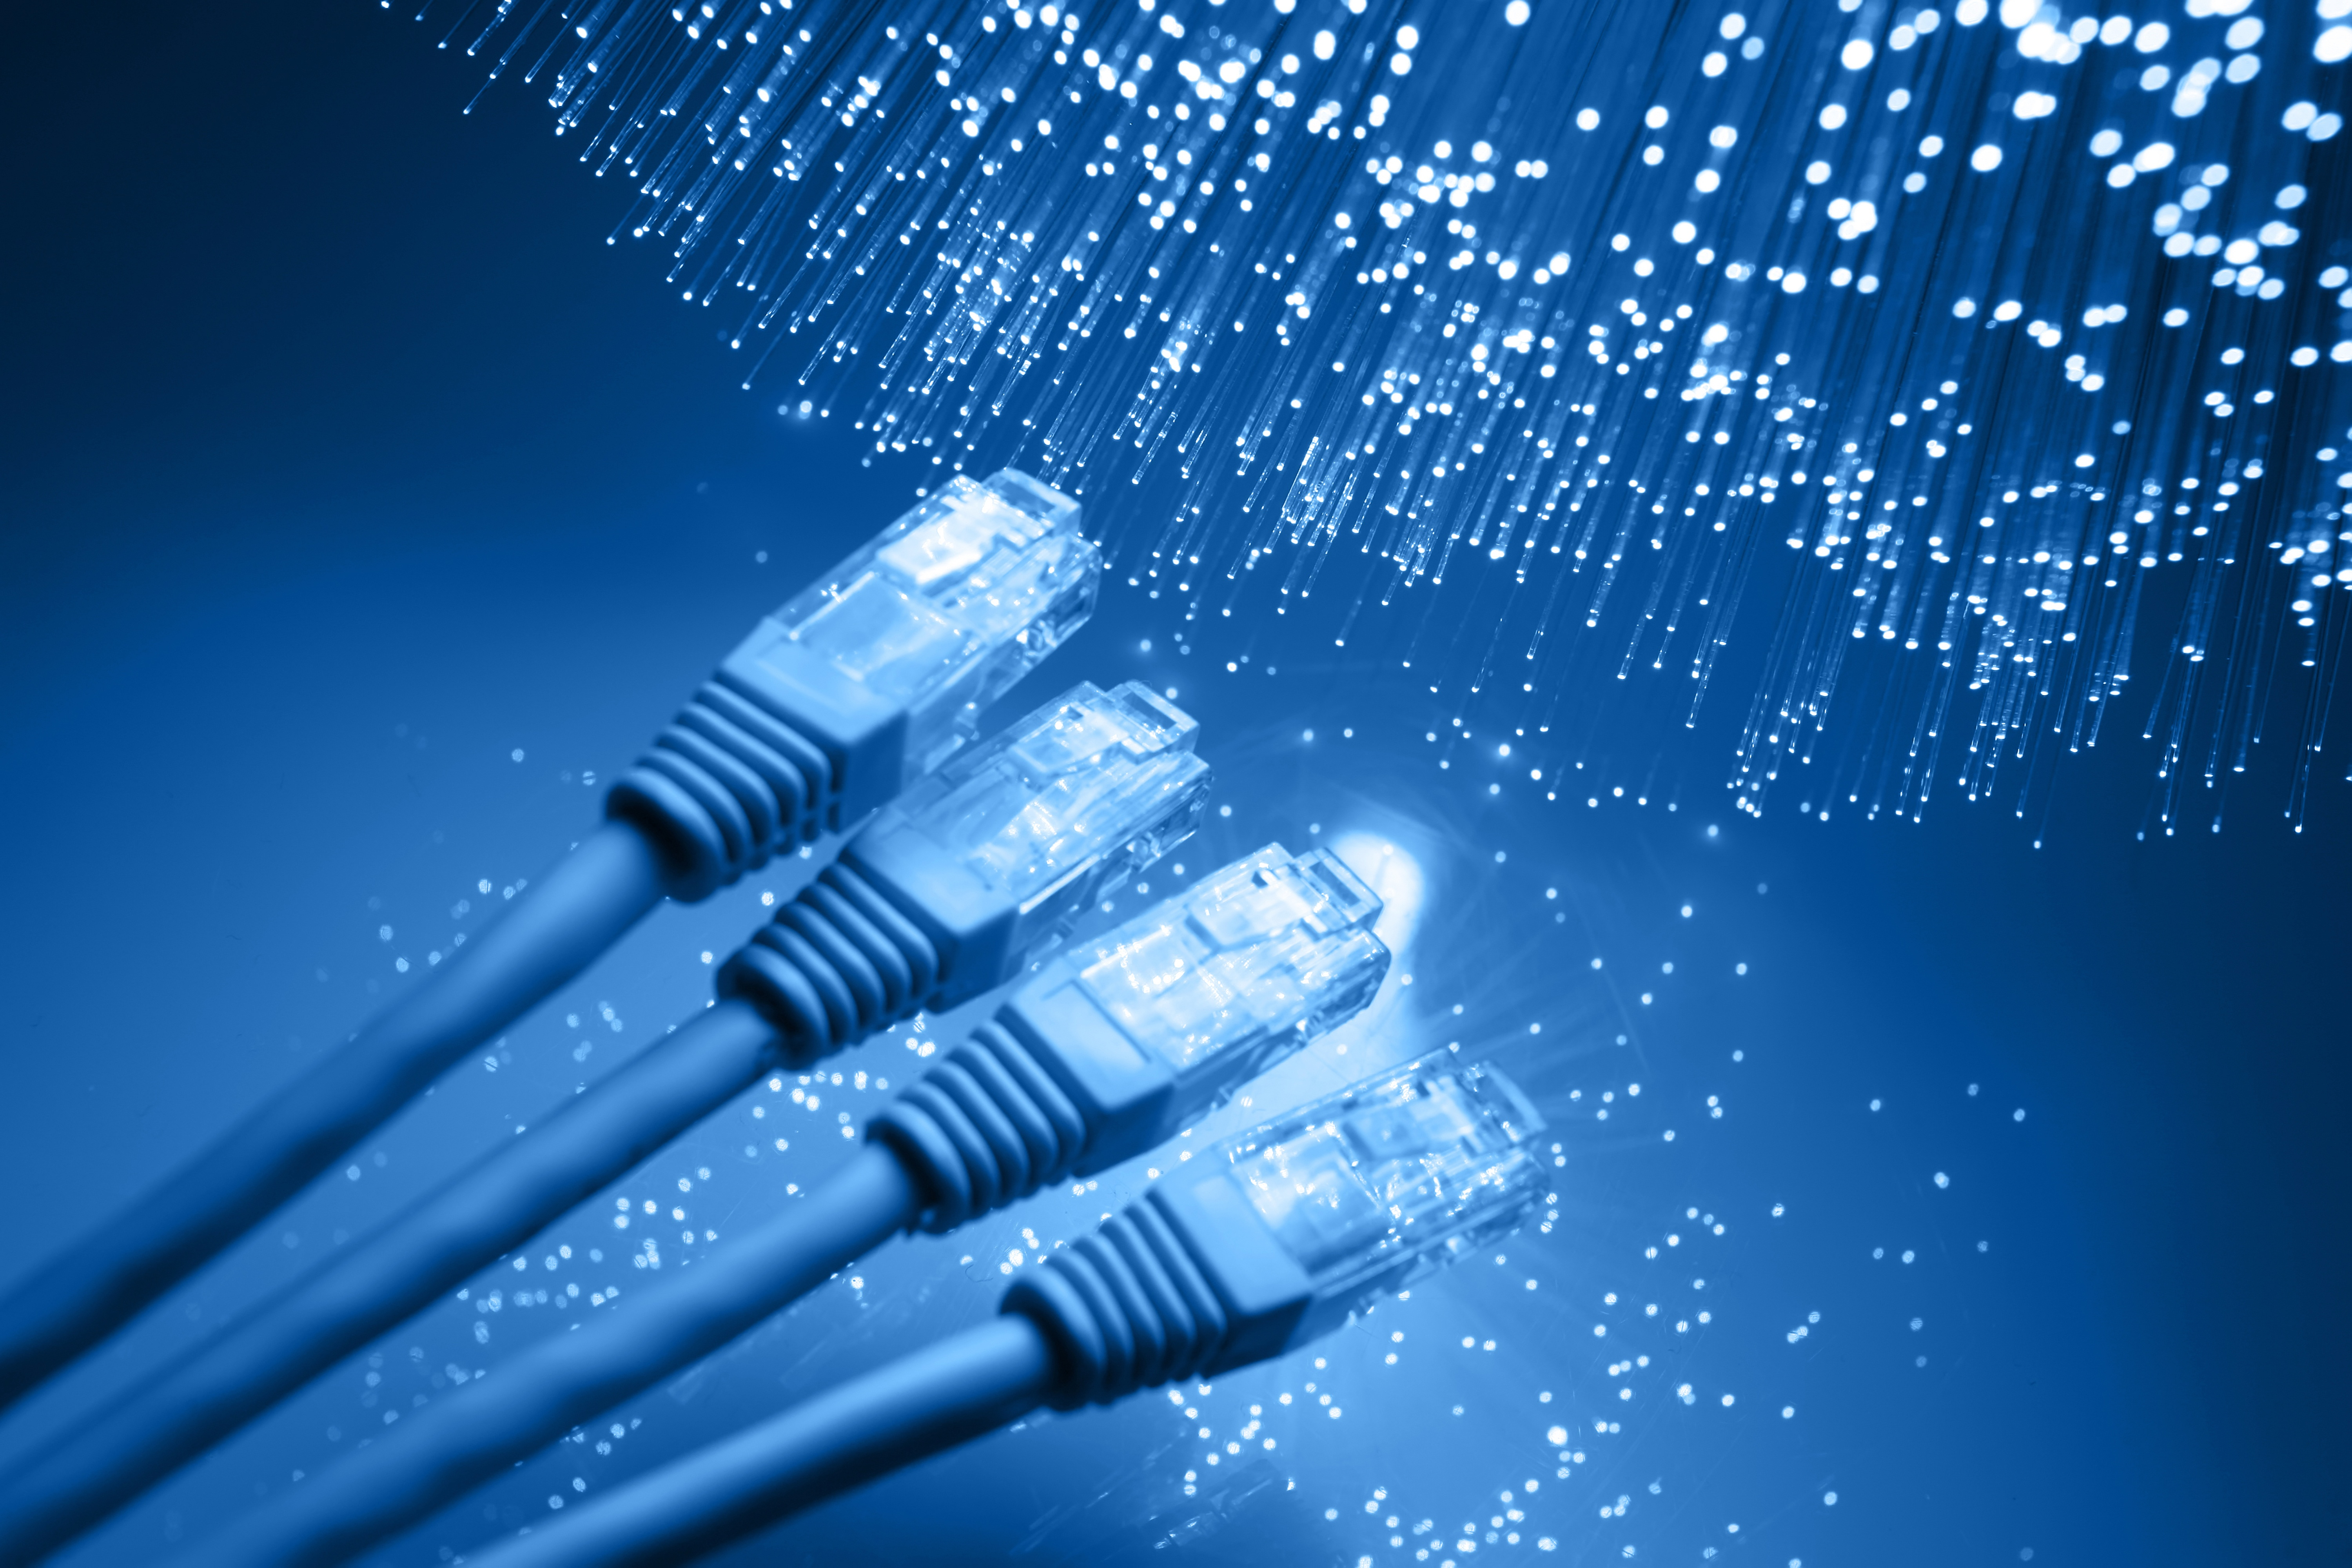 data cables and fiber blue 2-1.jpg